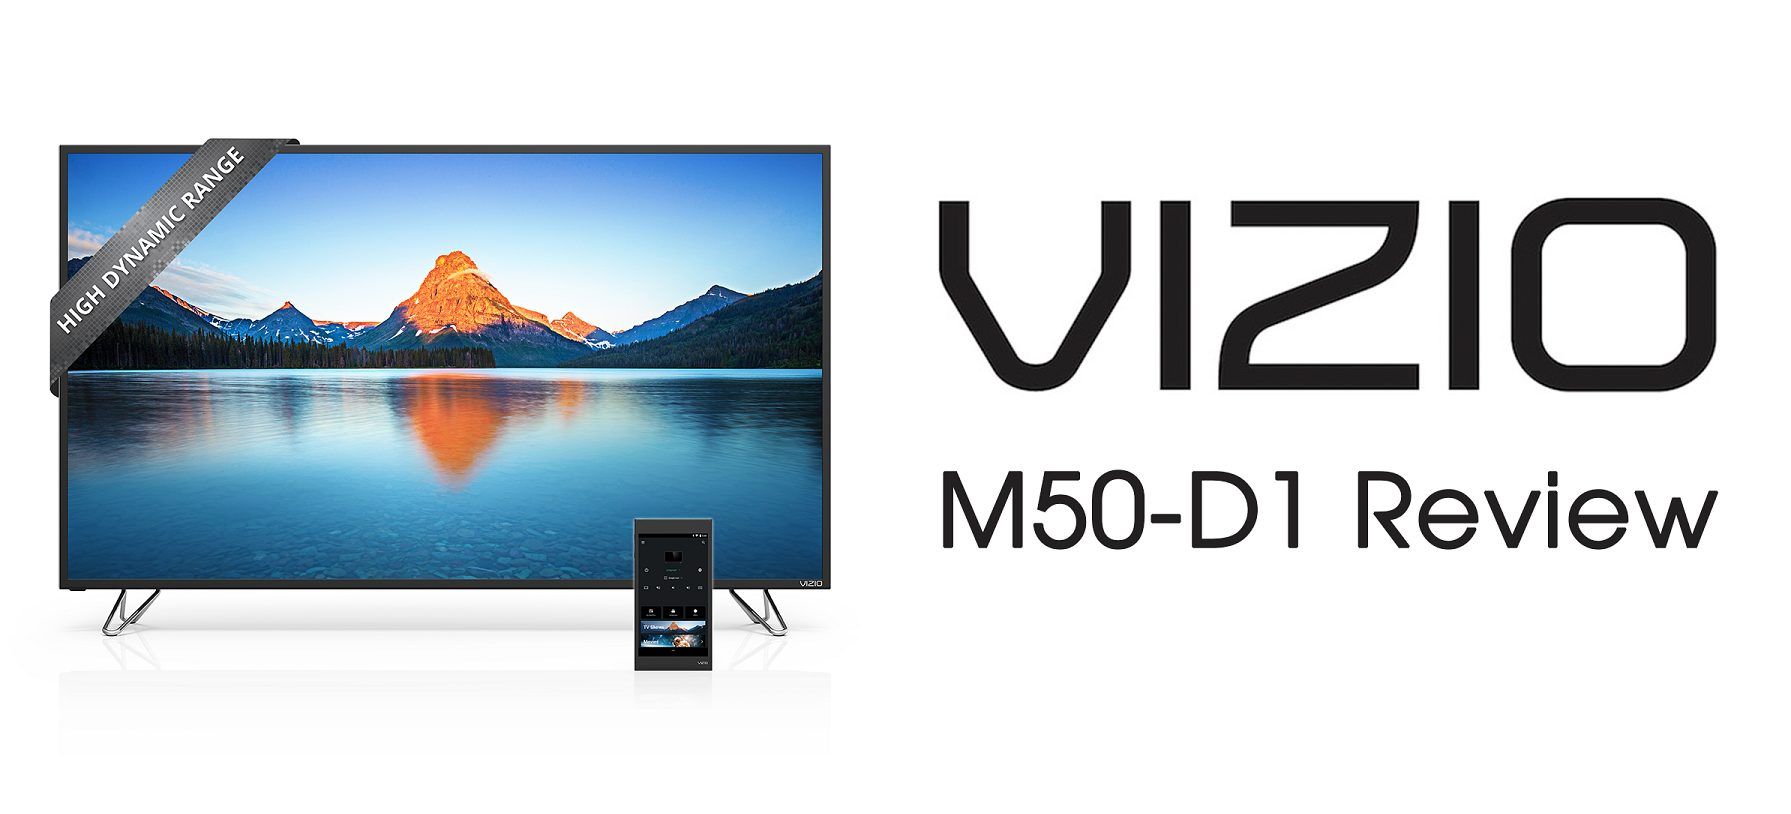 Images provided by VIZIO